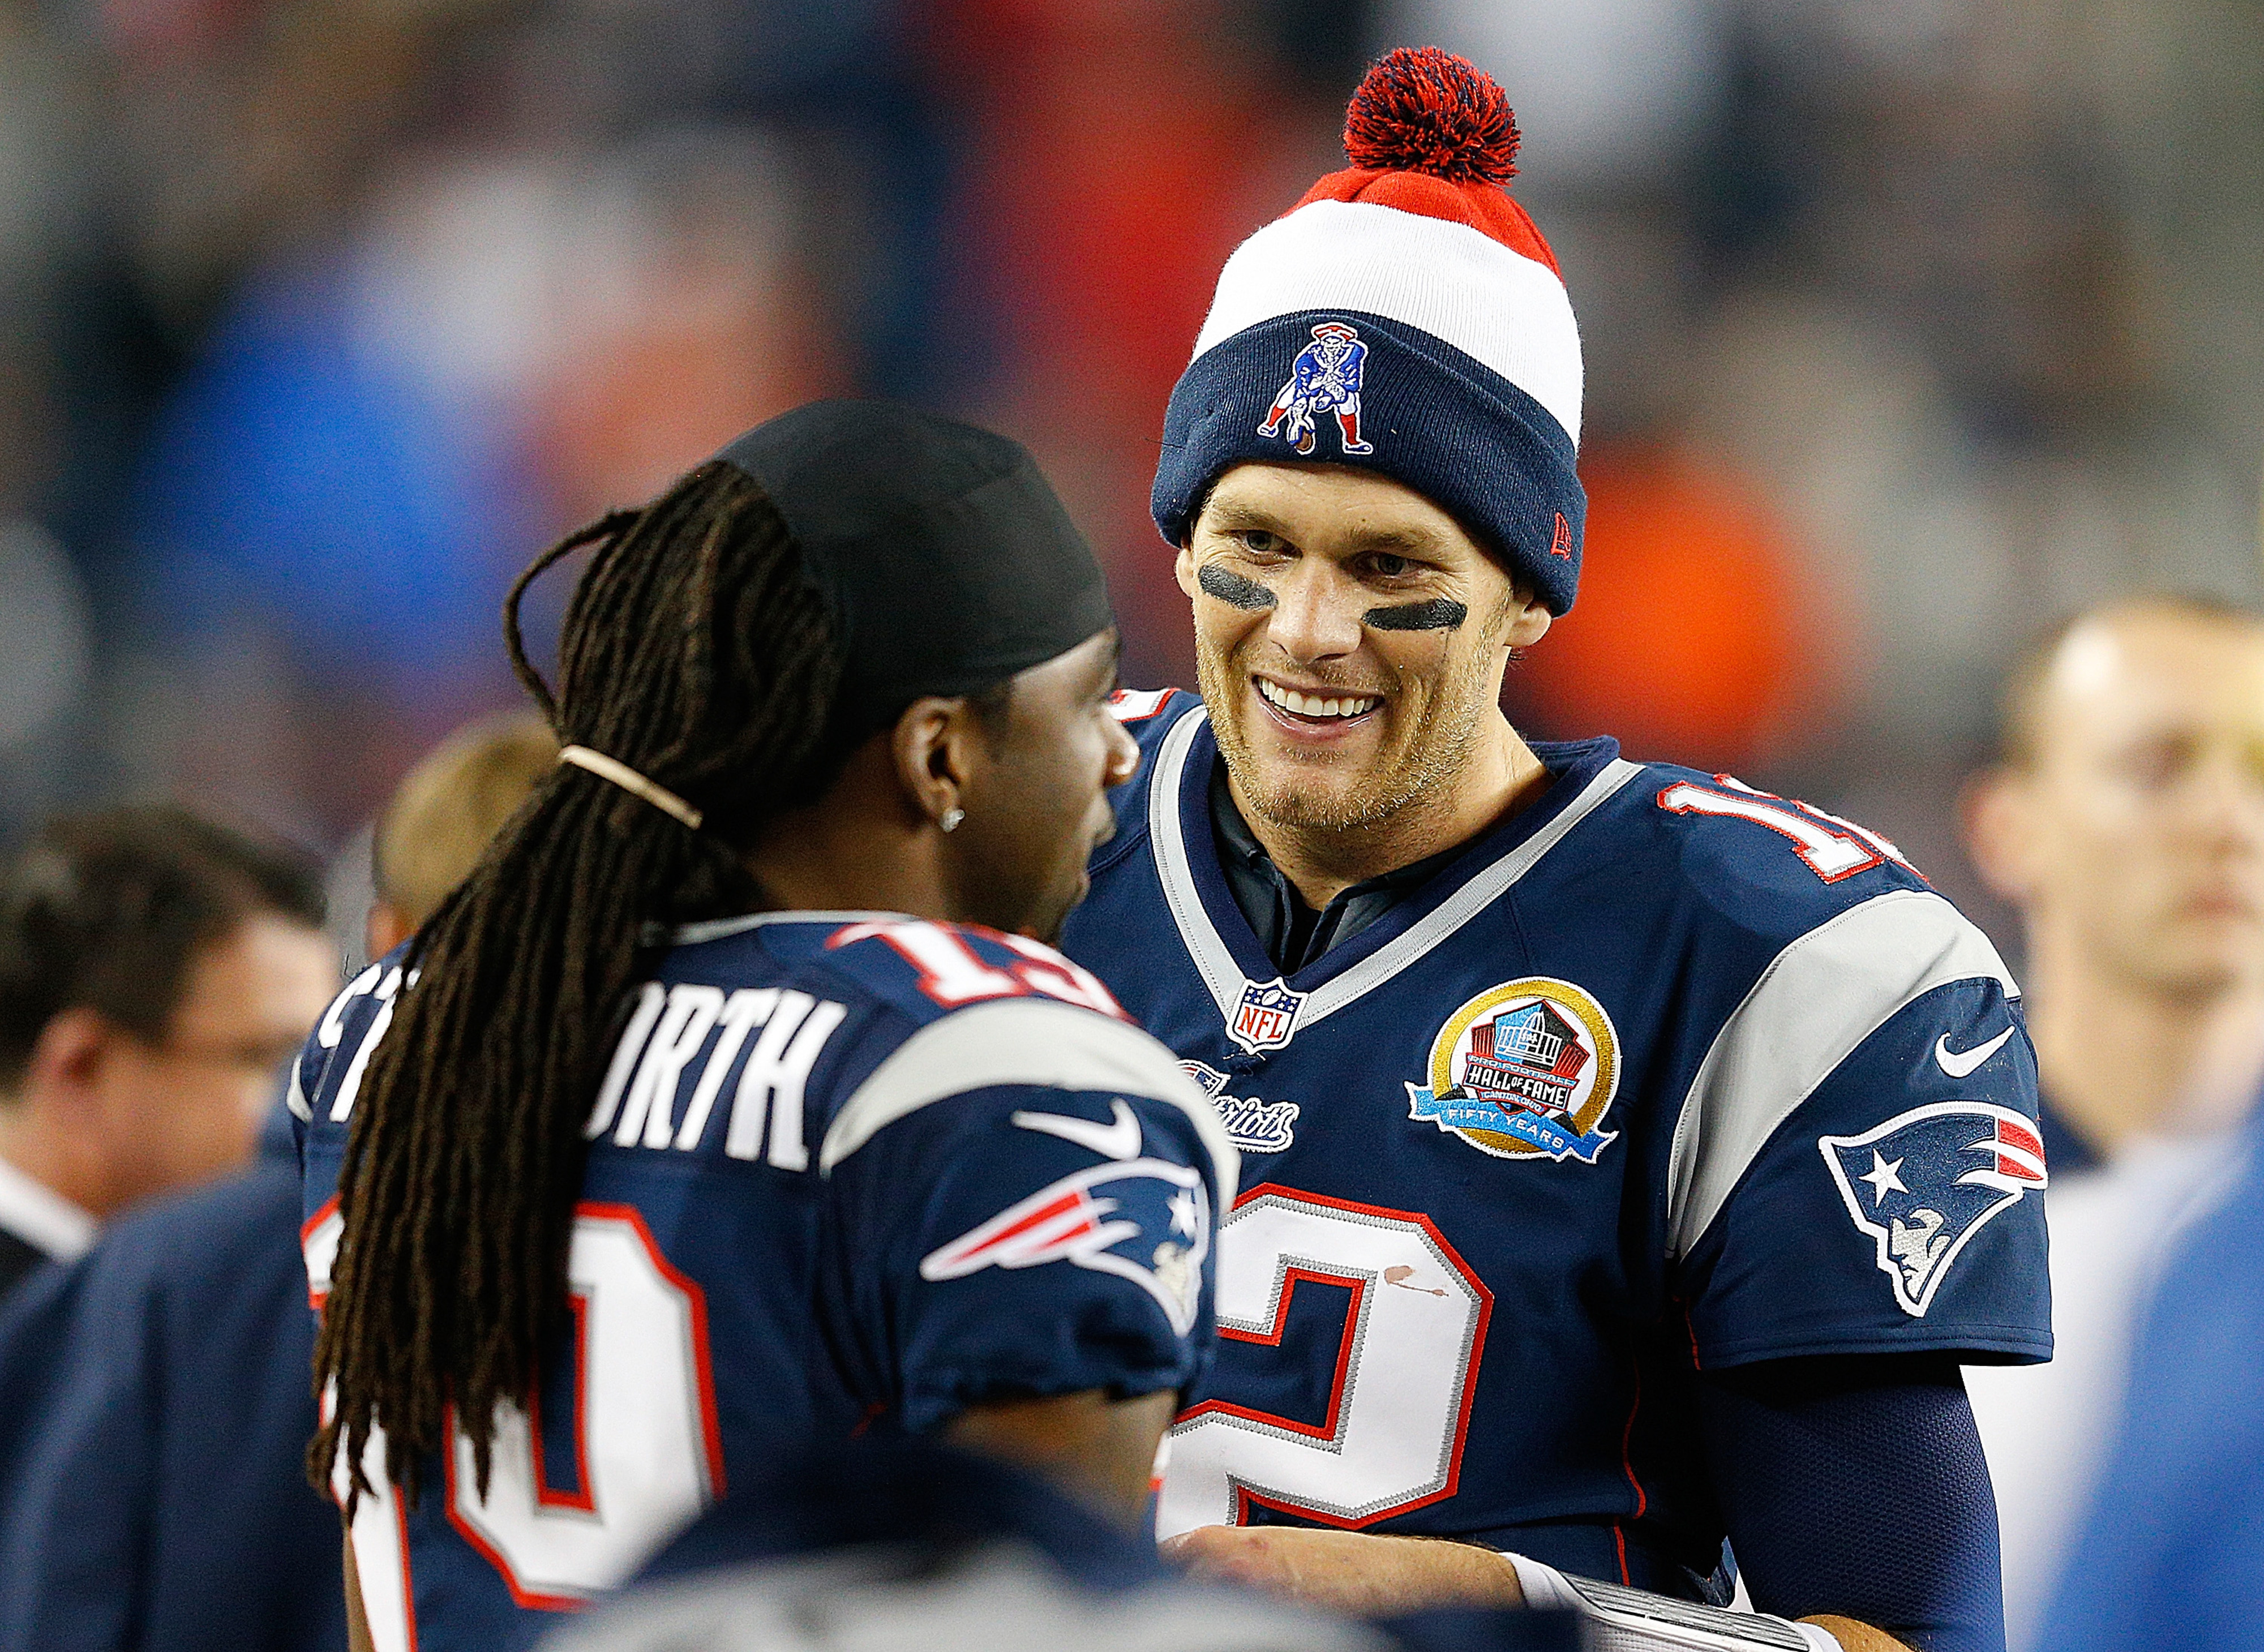 Donte Stallworth, Tom Brady, and the Pats are the new team to beat.